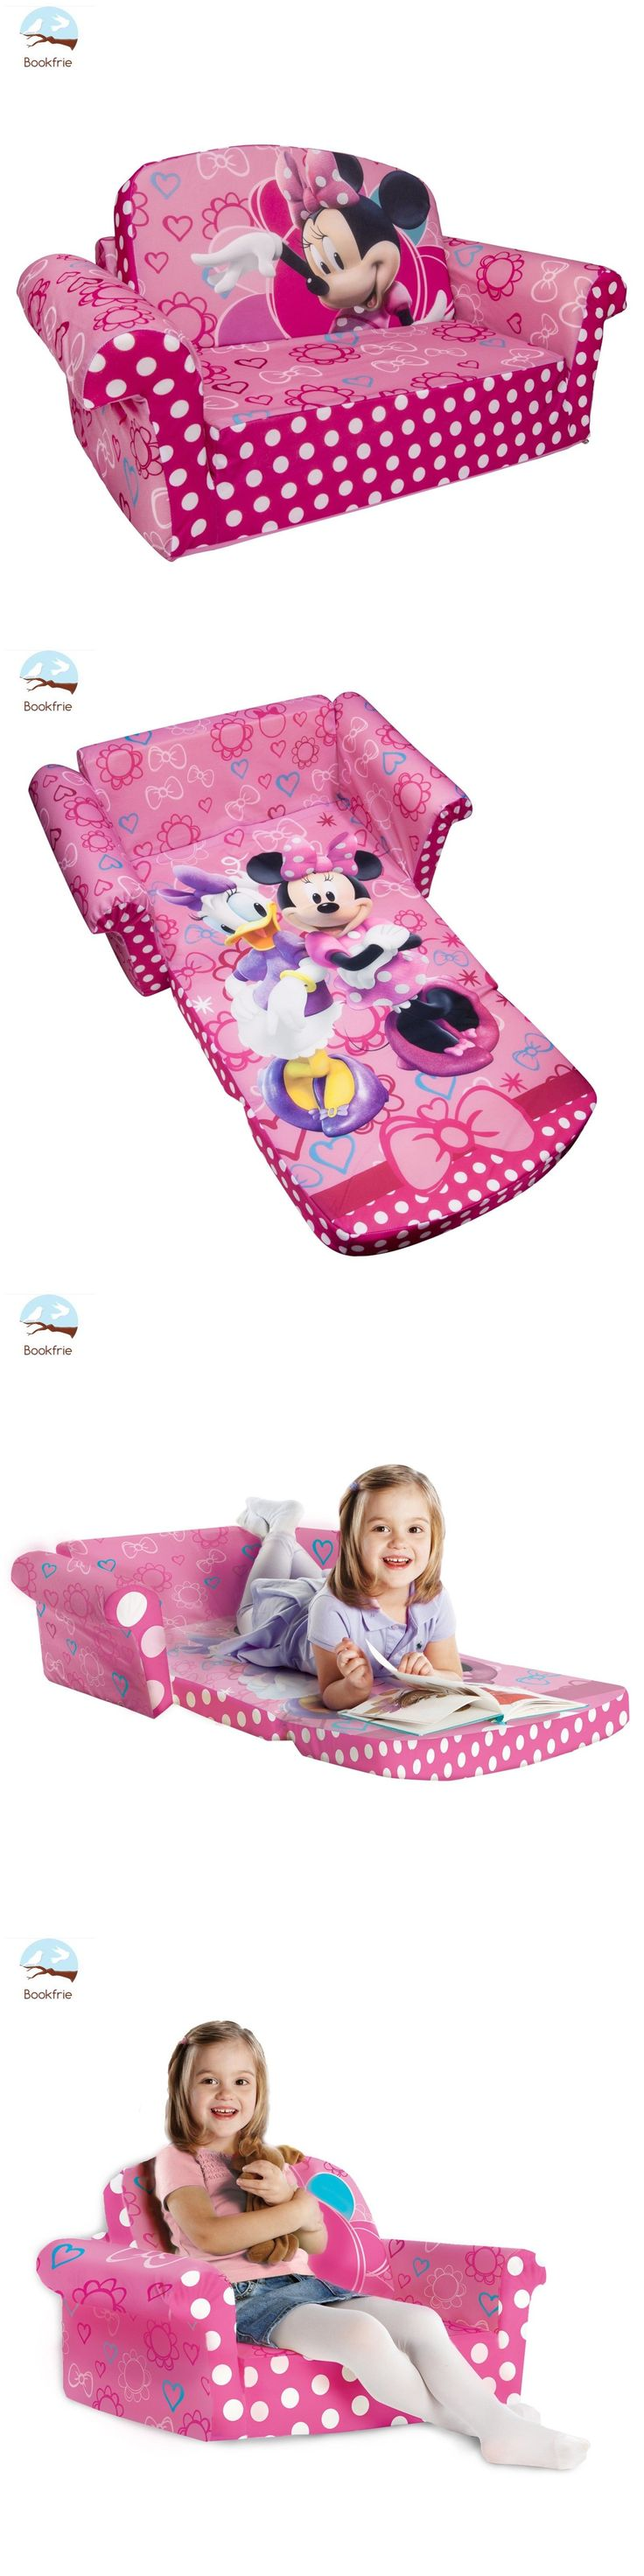 Sofas and Armchairs 134648: 2 In 1 Sofa Bed Kids Toddler Girl Sleeper Furniture Minnie Mouse Reclining Chair -> BUY IT NOW ONLY: $39.1 on eBay!